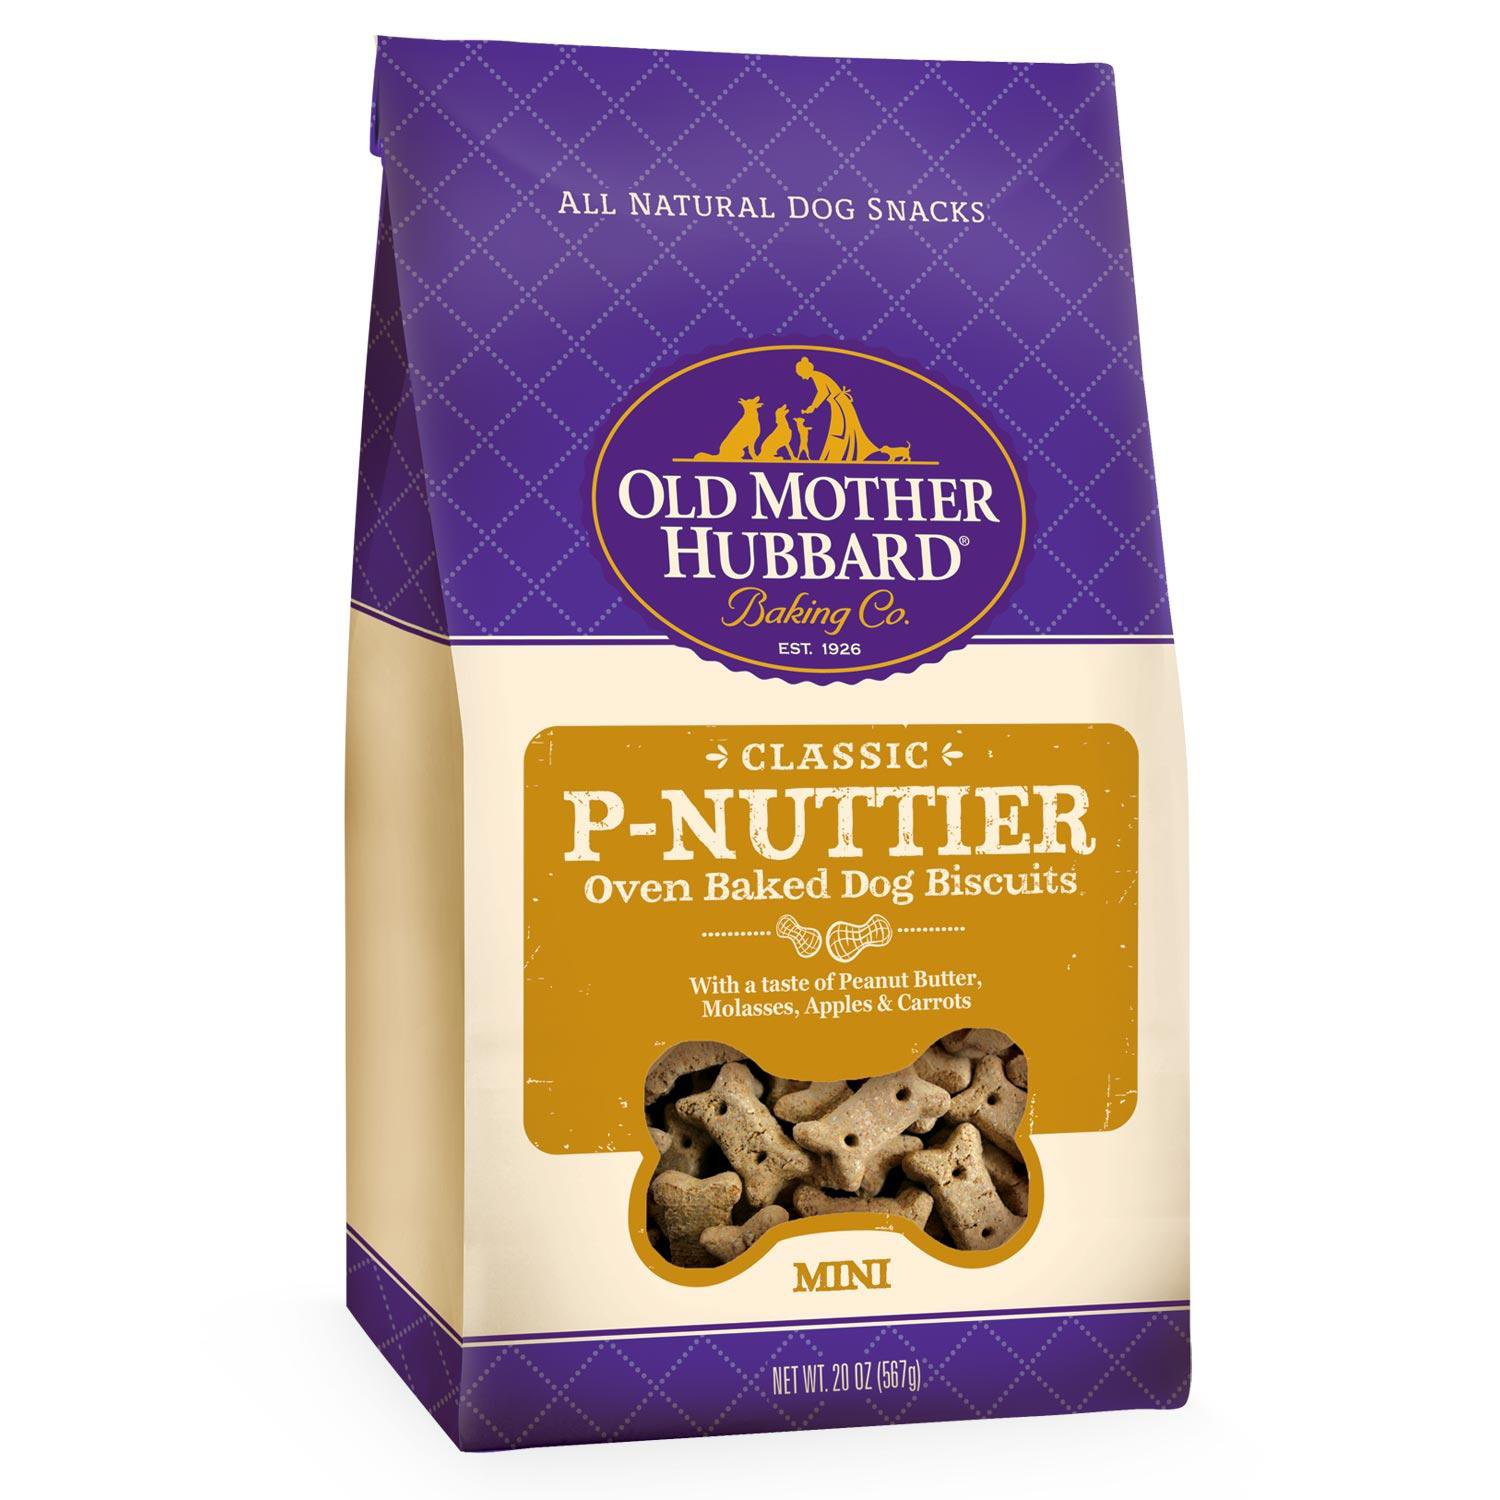 Old Mother Hubbard Mini P-Nuttier Dog Biscuits 20oz